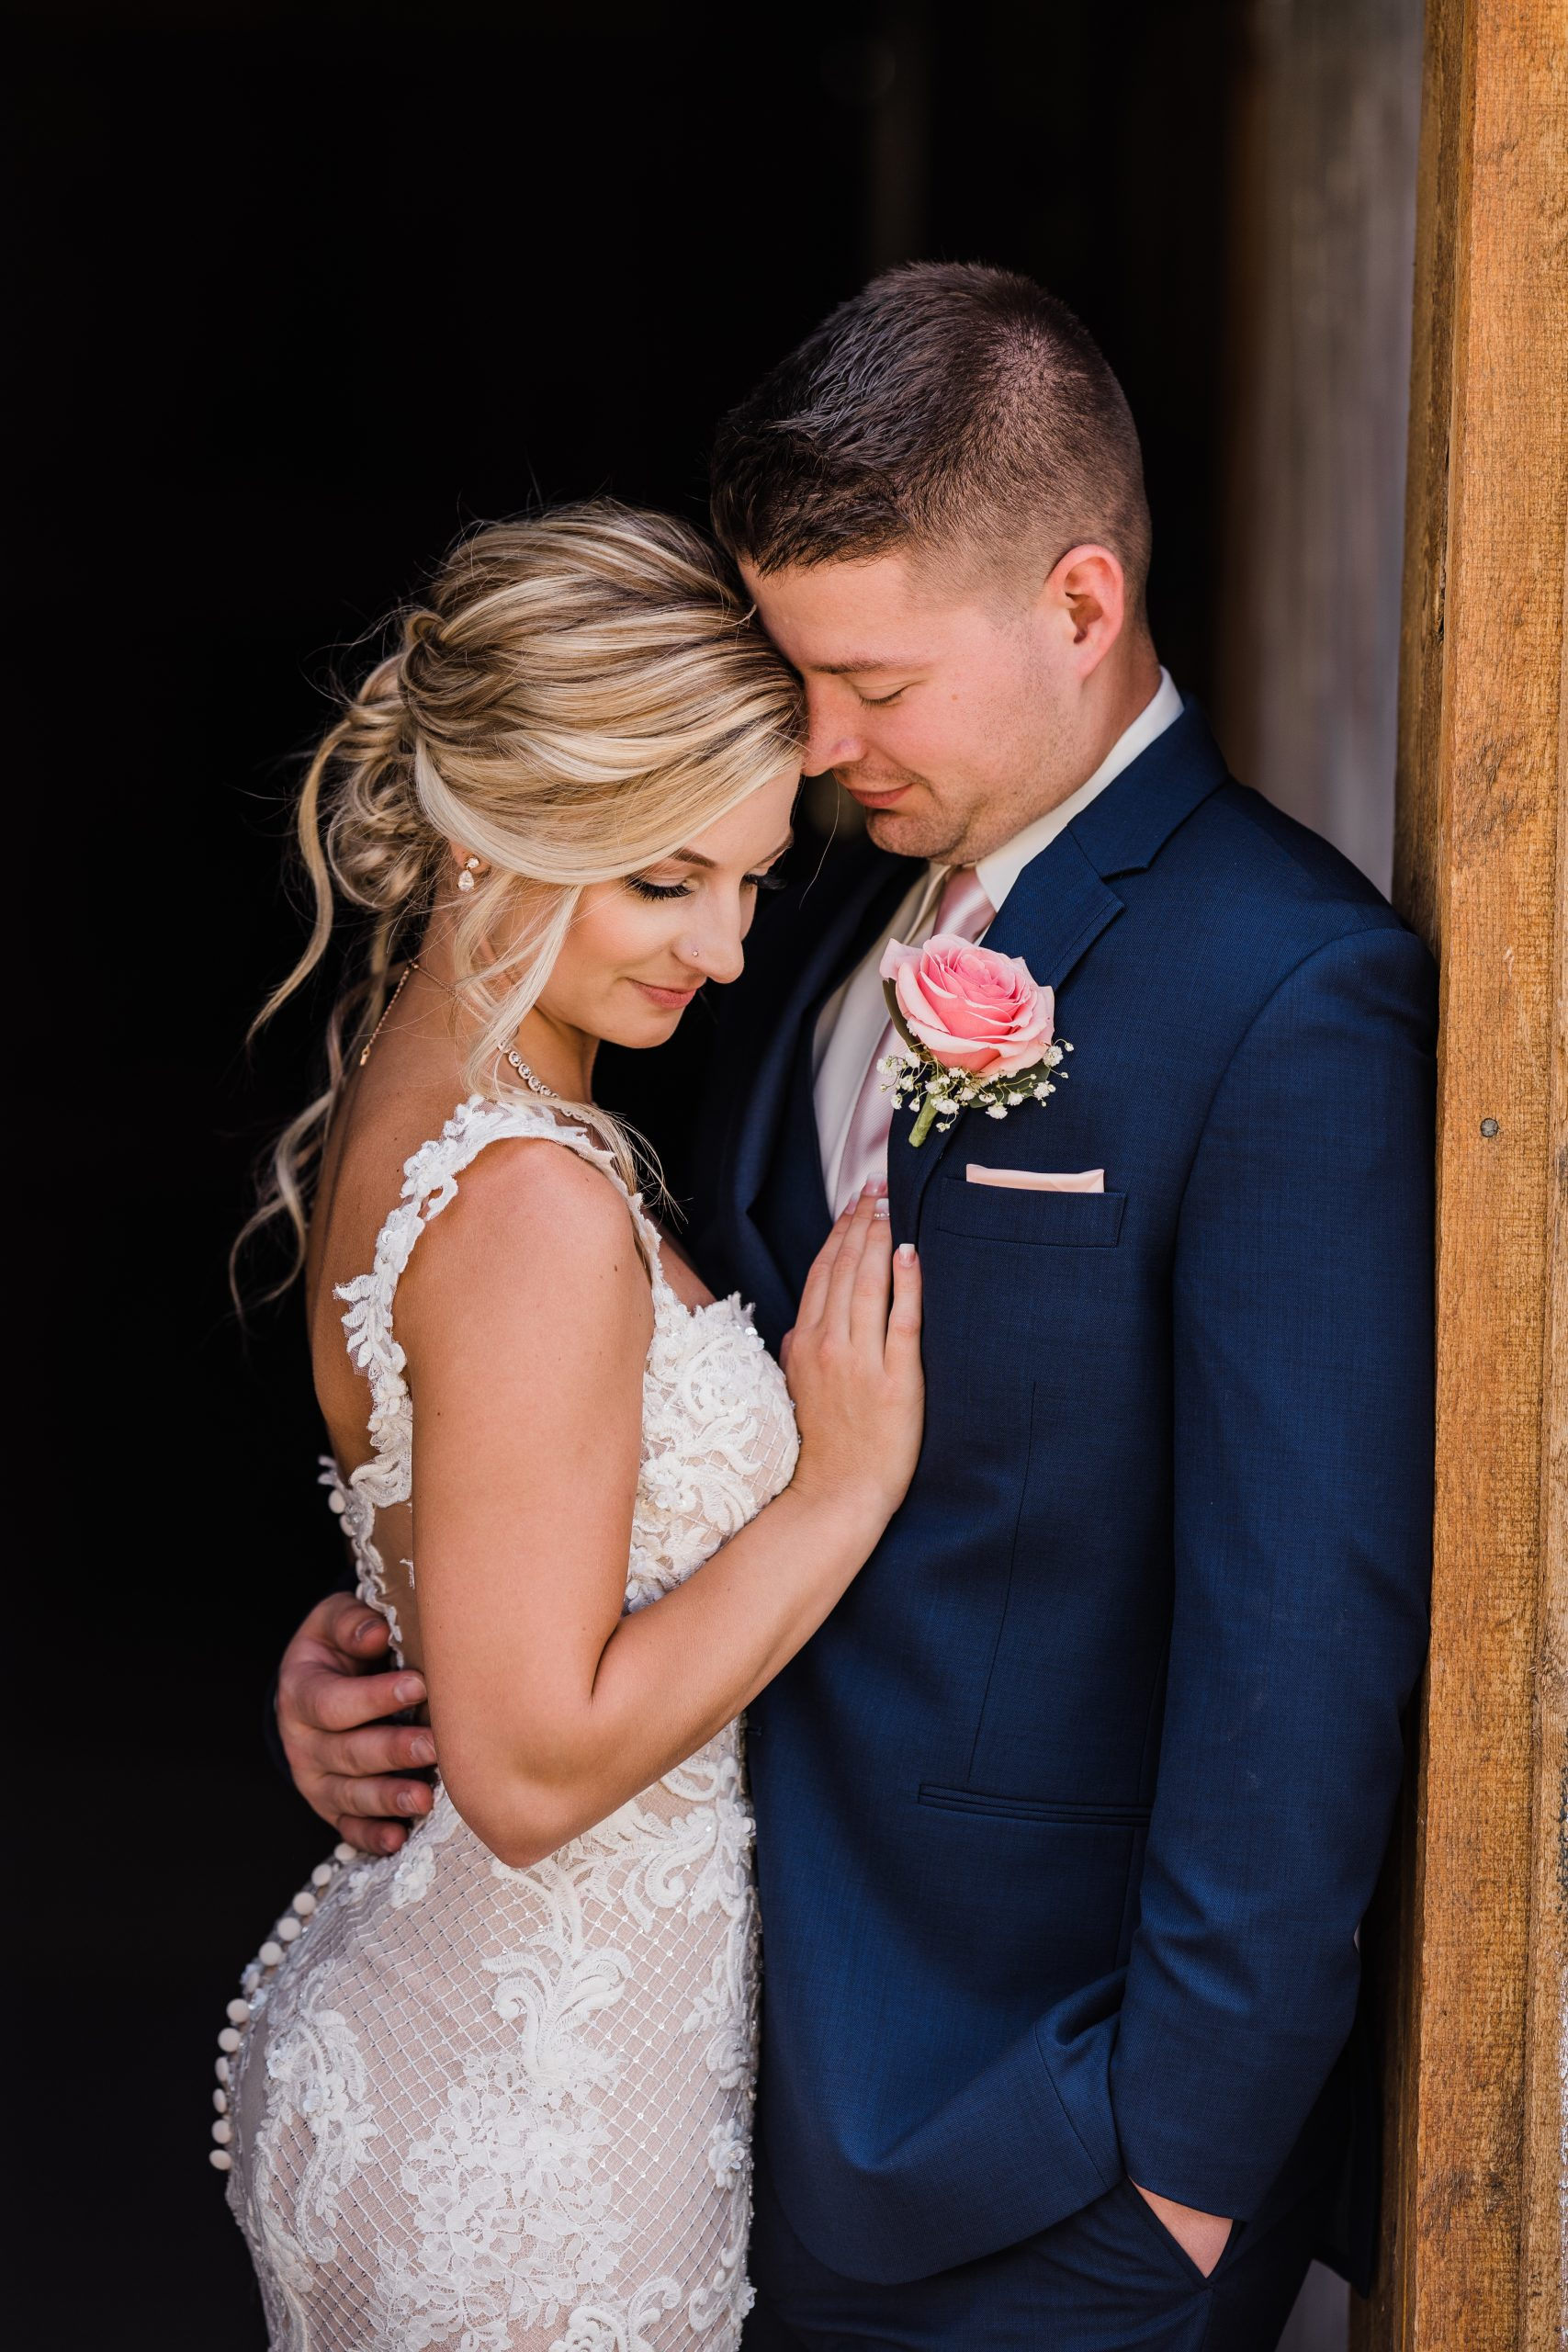 Groom with Real Bride Wearing Lace Wedding Dress Called Abbie by Maggie Sottero